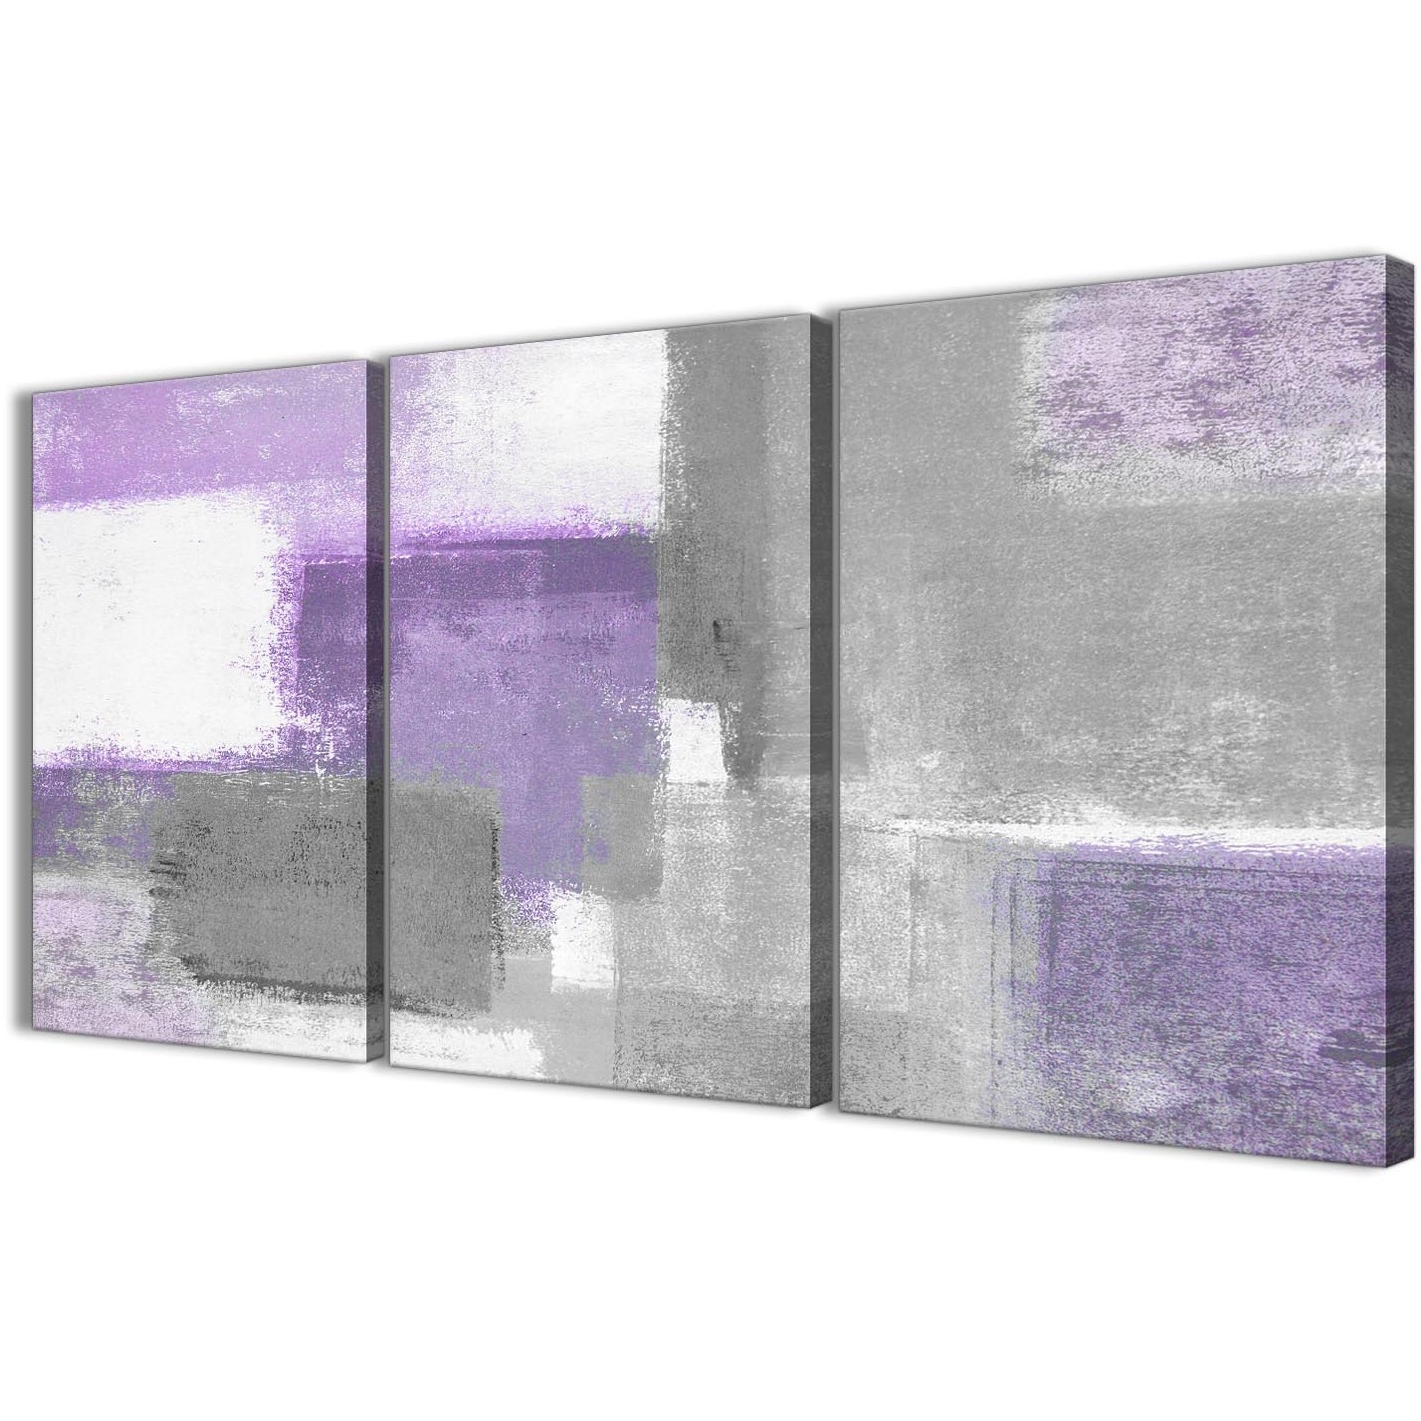 2017 Gray Canvas Wall Art For 3 Piece Purple Grey Painting Kitchen Canvas Pictures Decor (View 4 of 20)